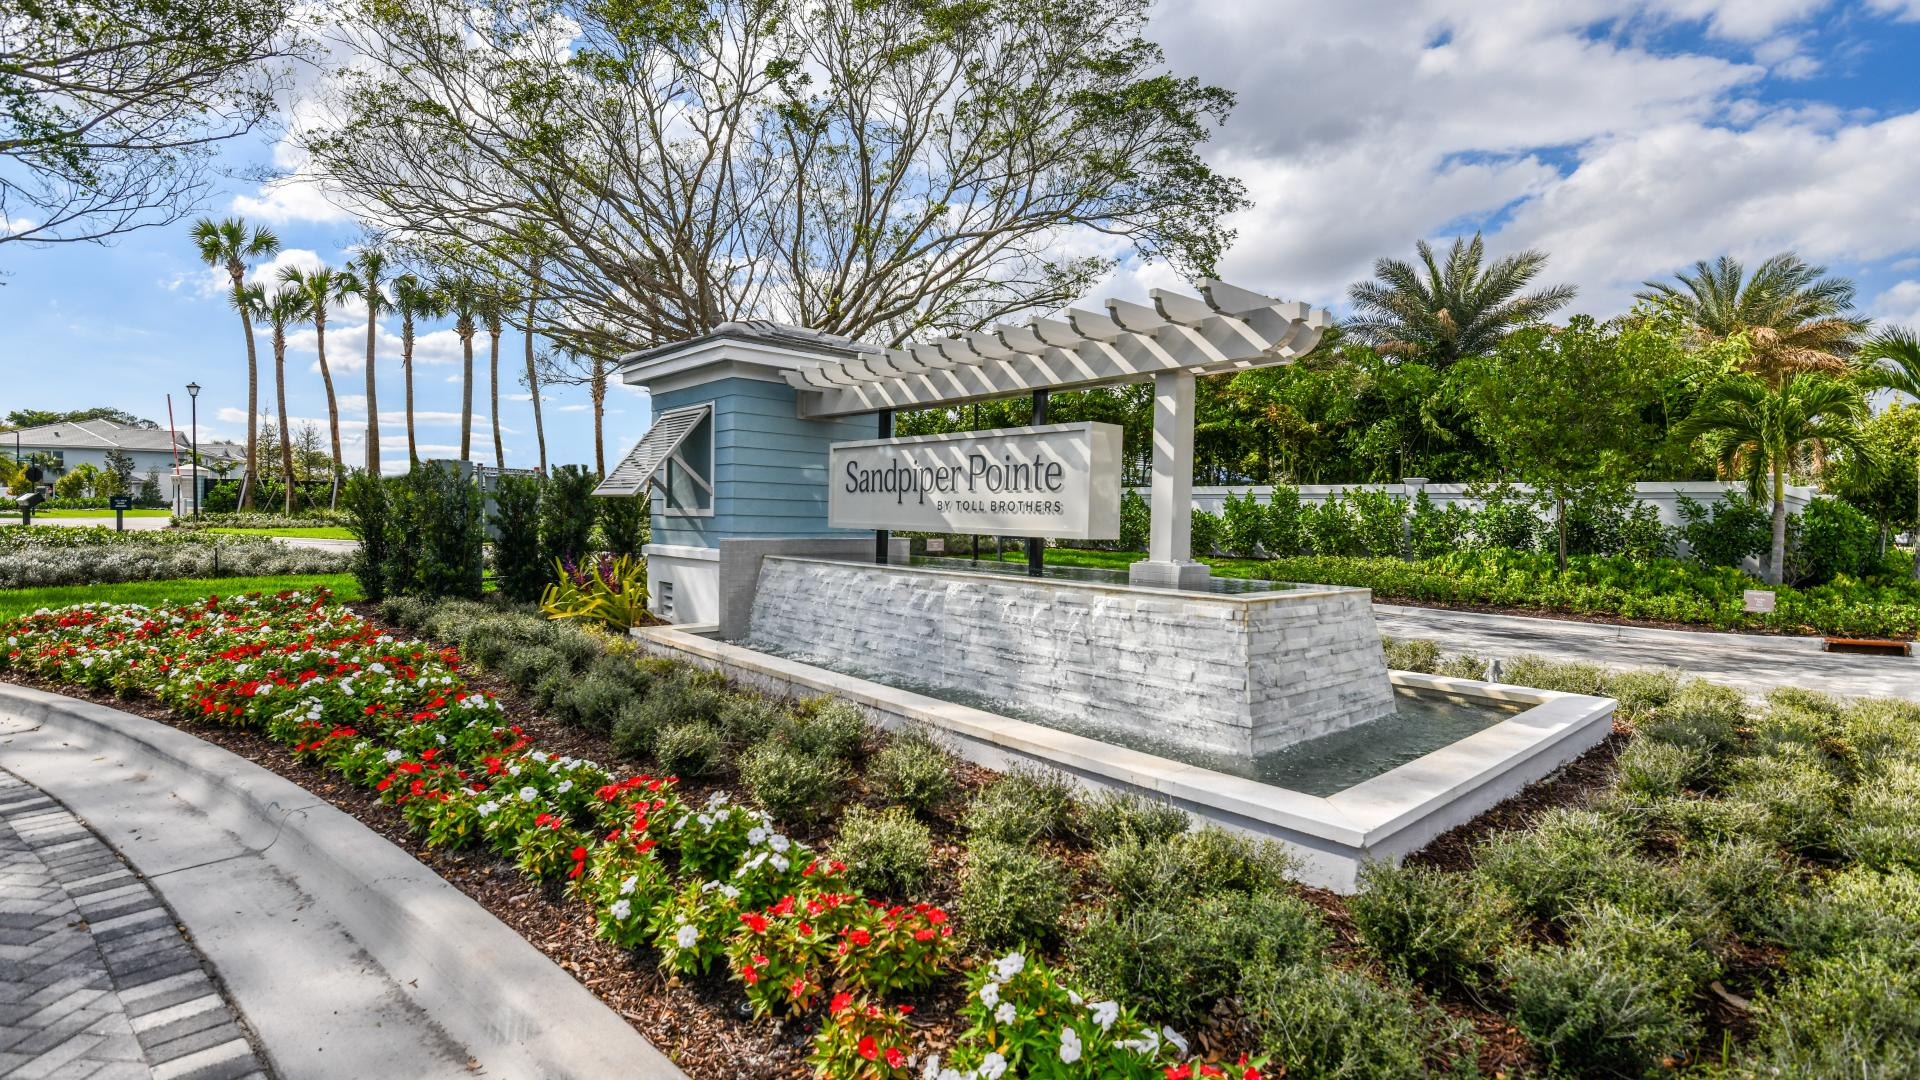 Welcome to Sandpiper Pointe at Deerfield Beach